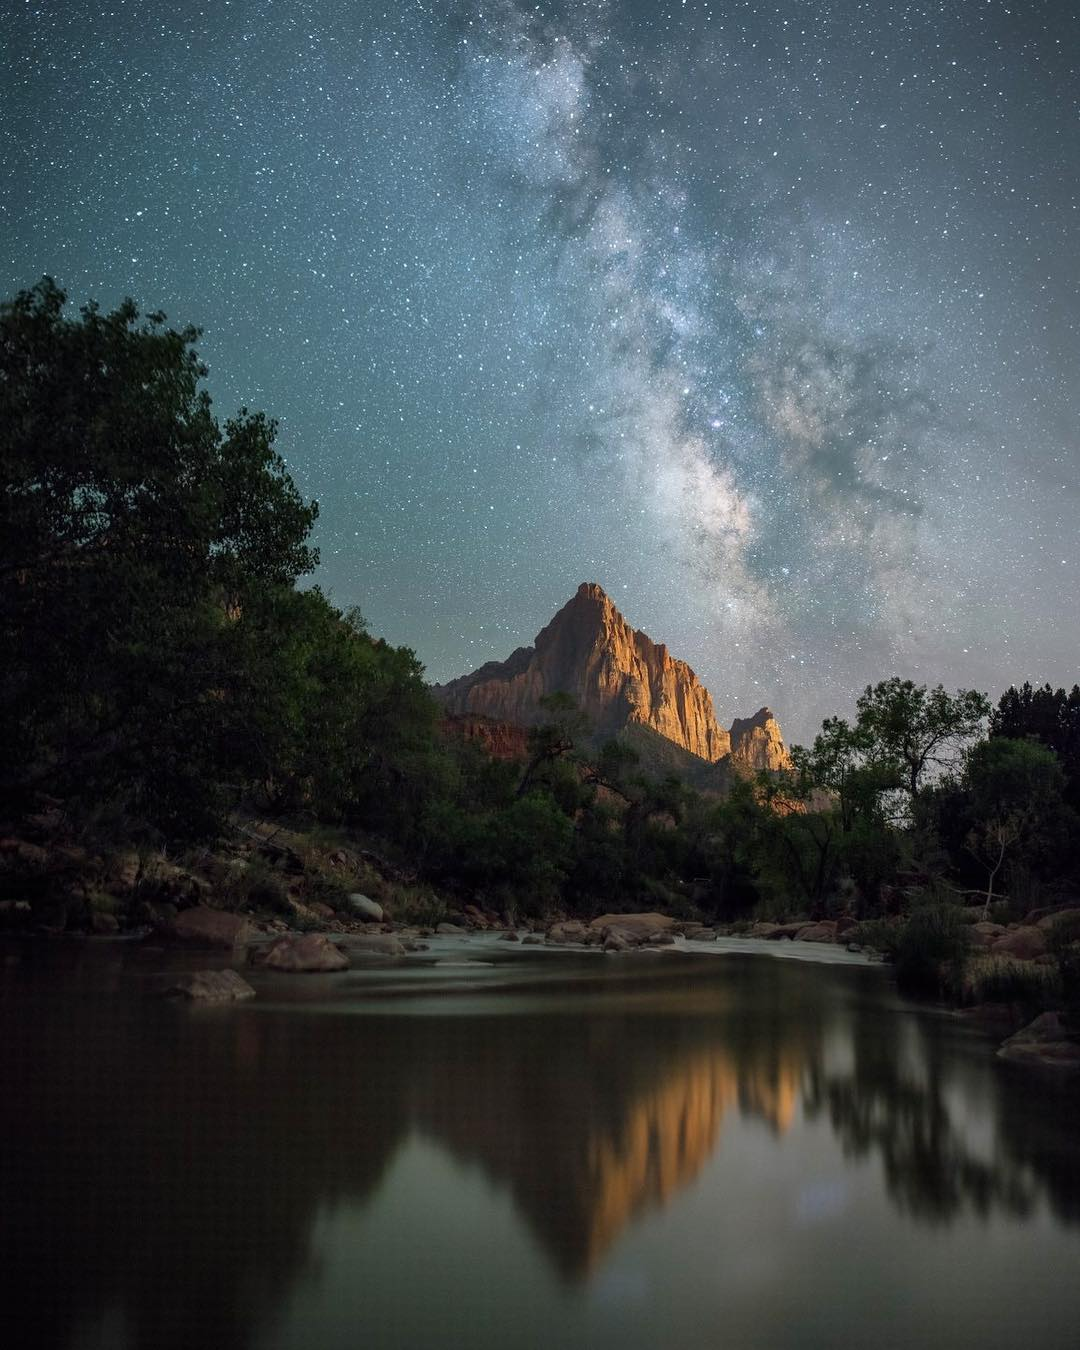 Zion Night Photo with the Watchman and Milkyway Reflection